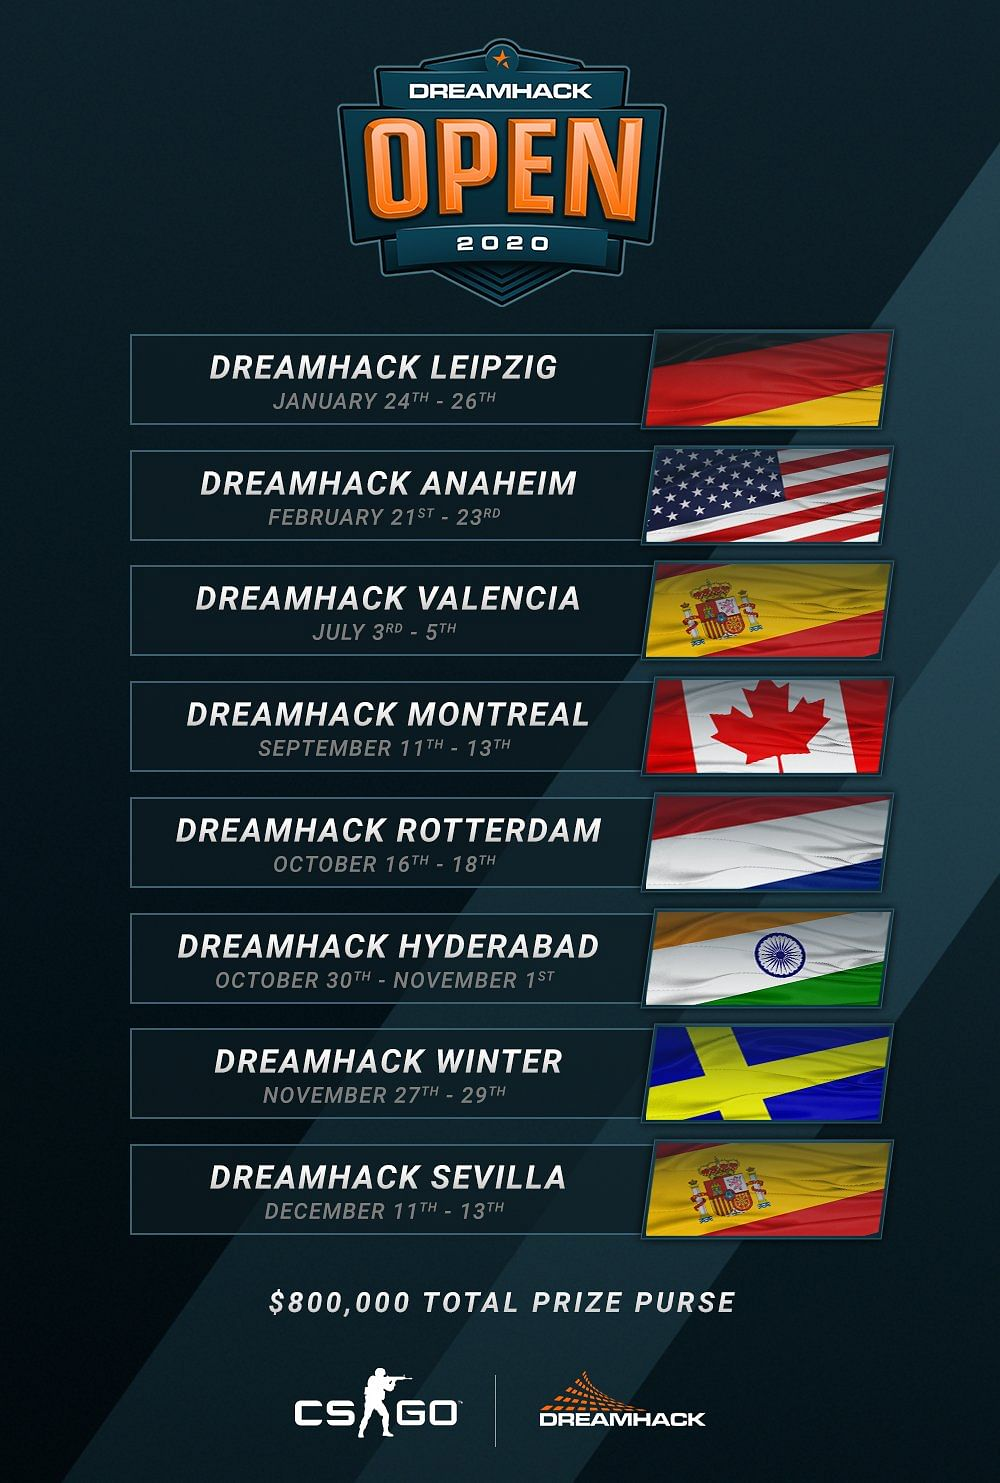 Update on DreamHack Hyderabad to be Announced After March